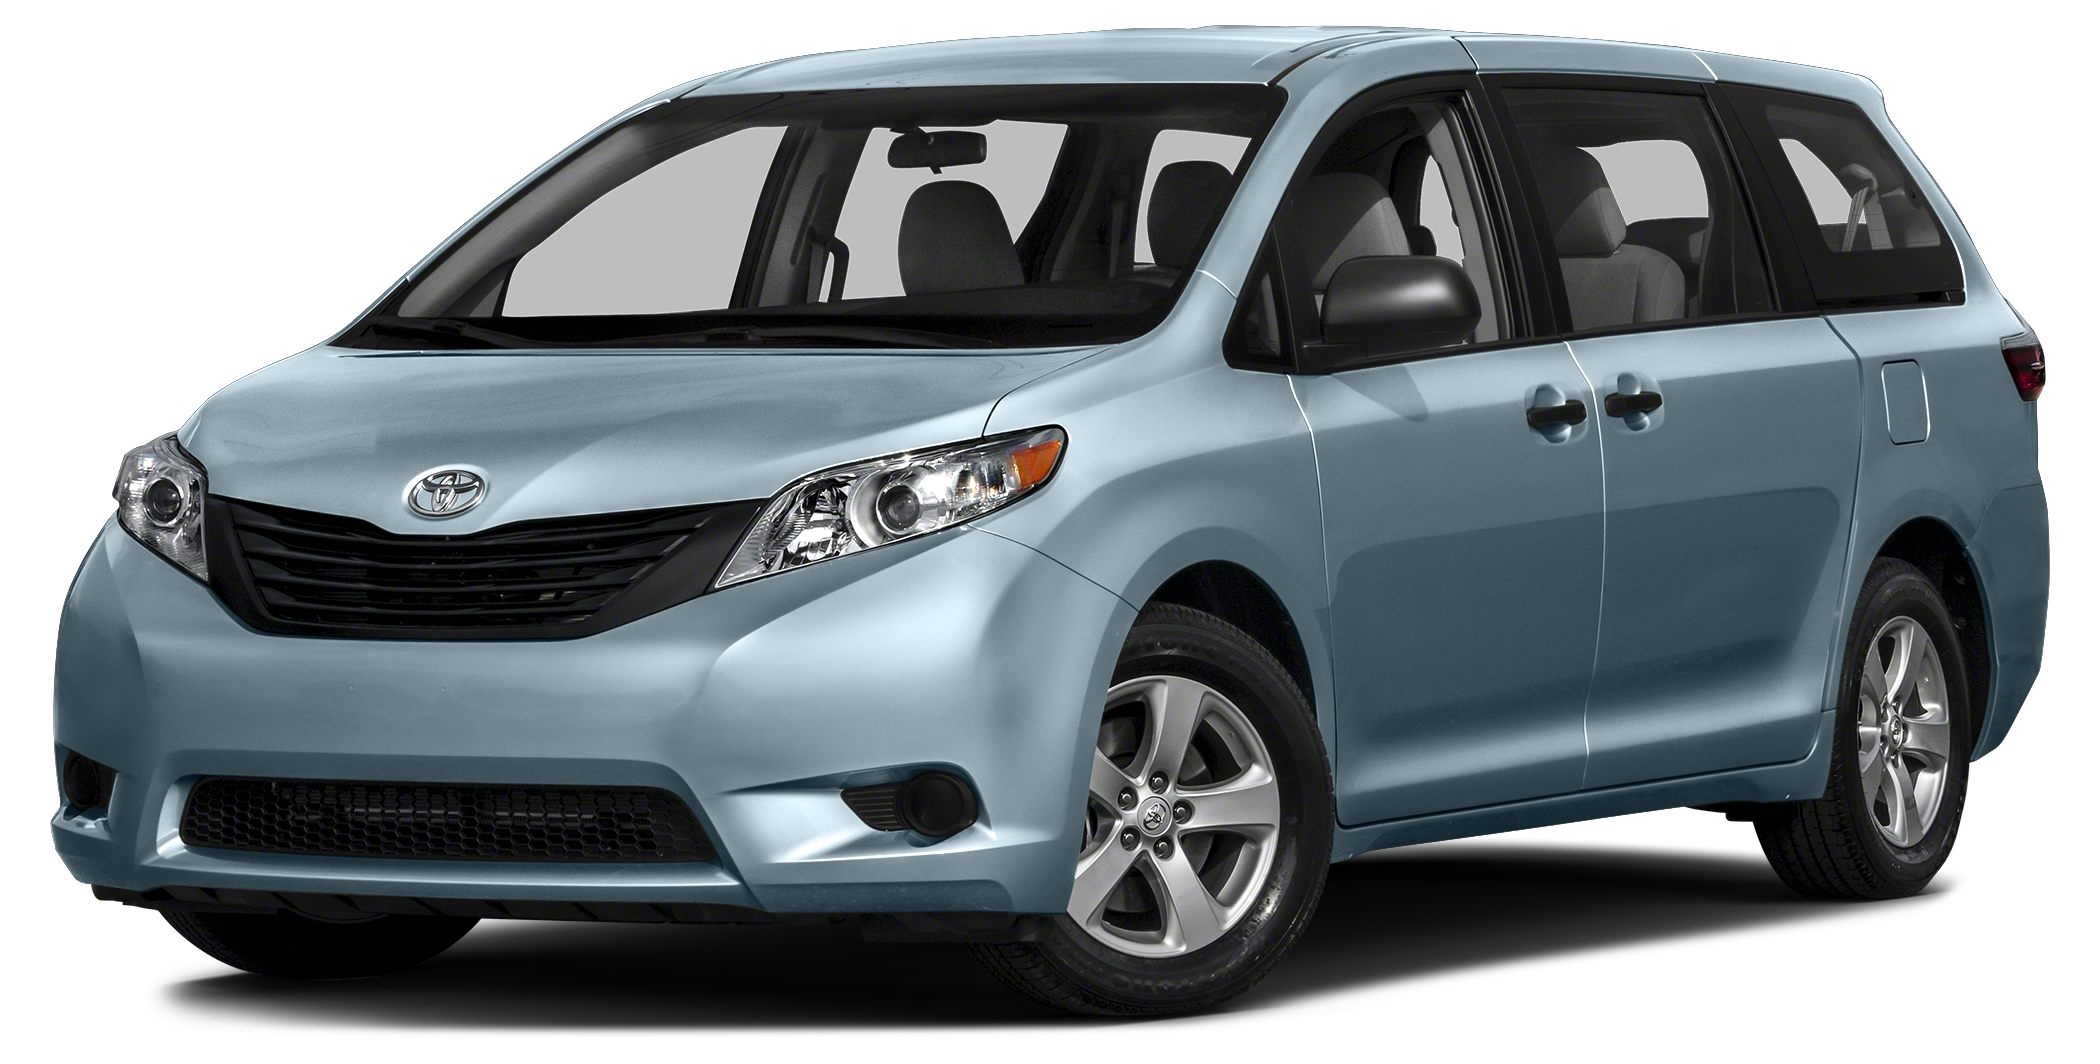 2015 Toyota Sienna LE 8 Passenger CARFAX 1-Owner LE trim FUEL EFFICIENT 25 MPG Hwy18 MPG City